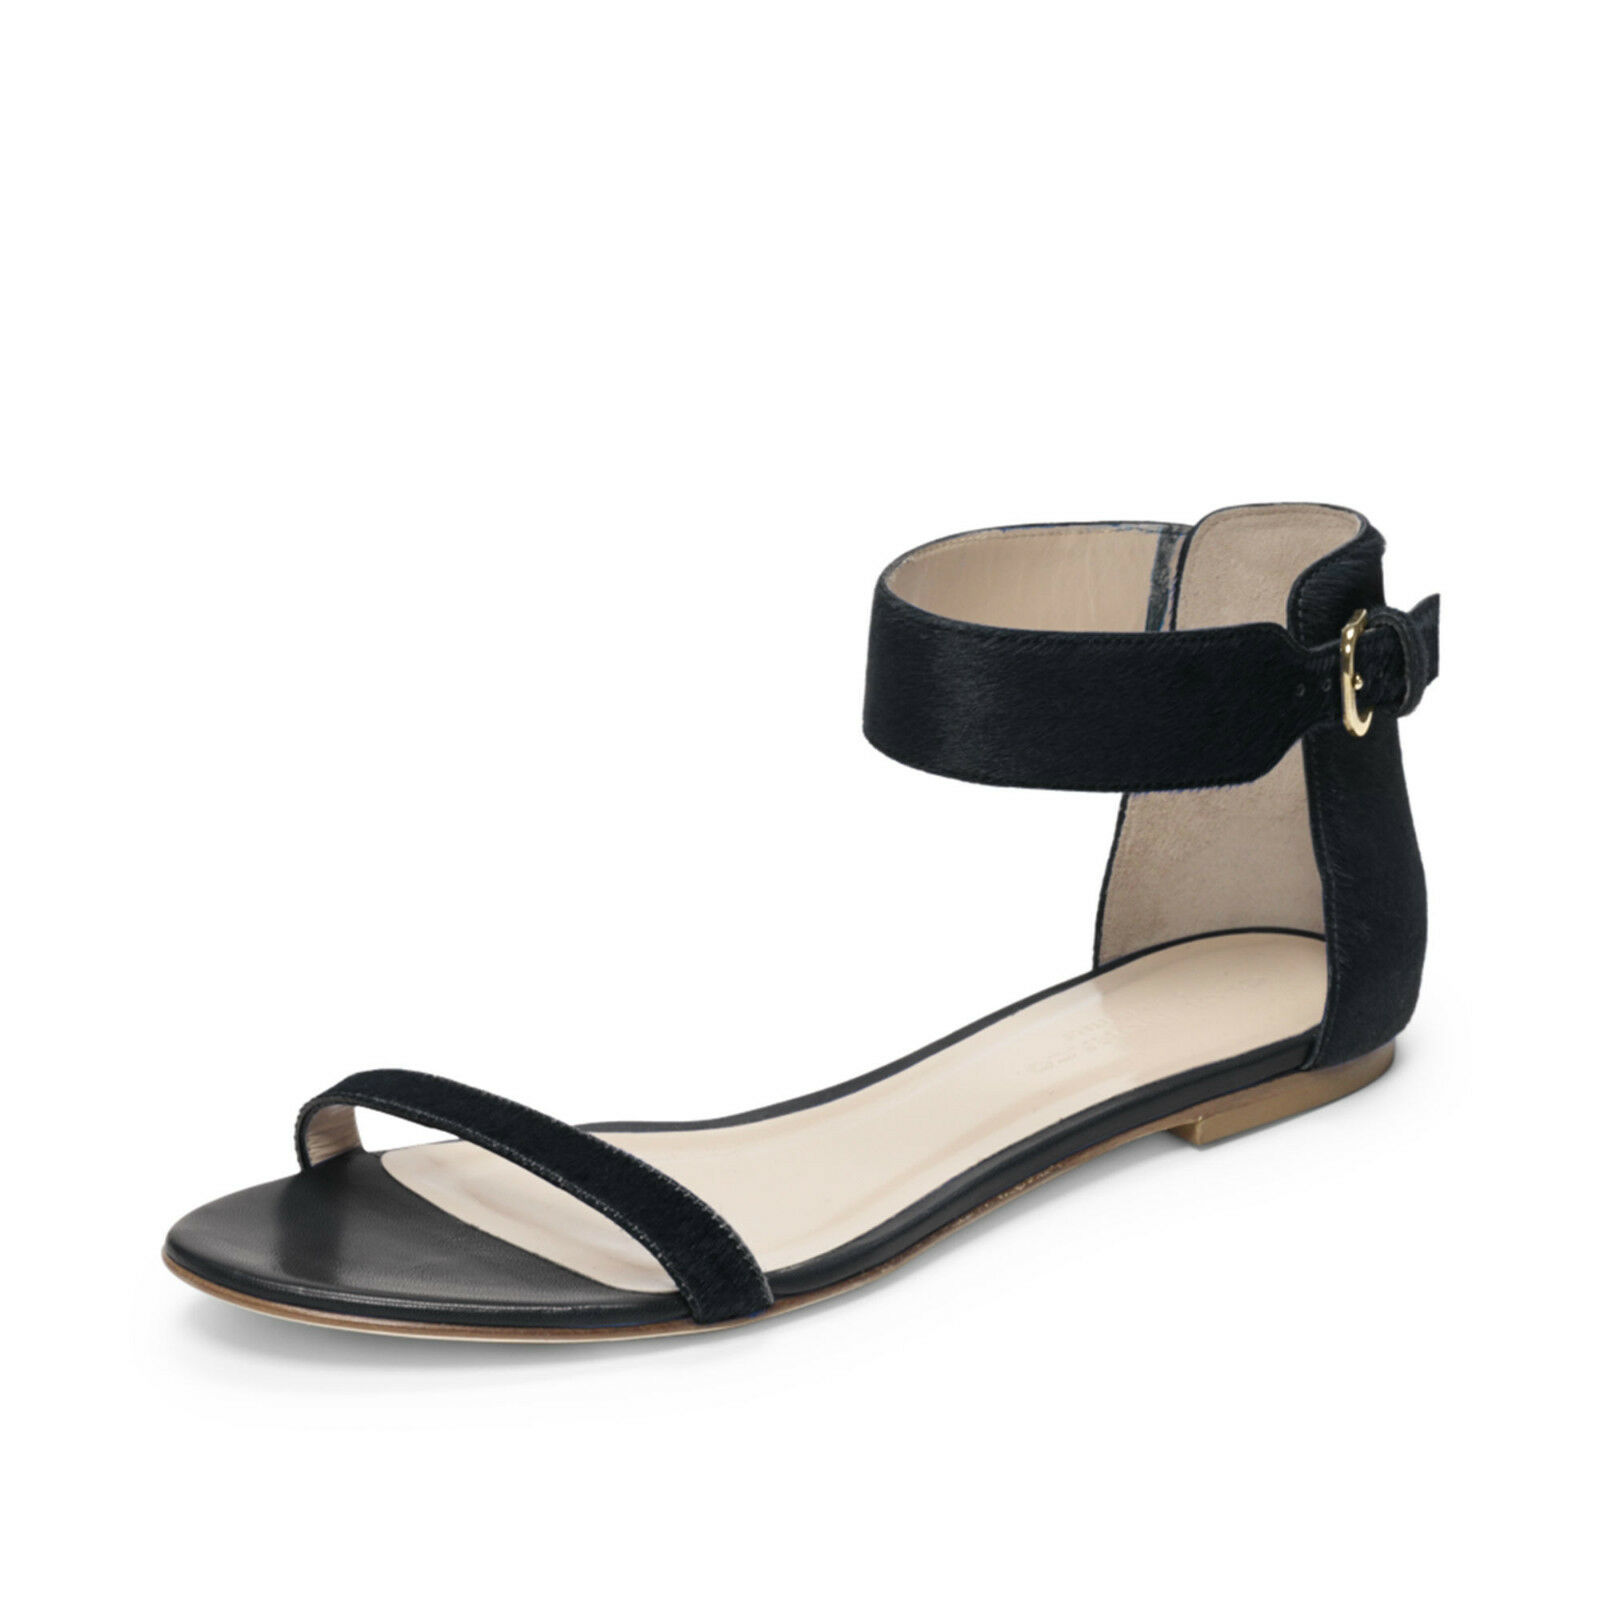 $229 New Club Monaco Black Hayley Pony SKINS Flats Ankle Ankle Flats Strap Sandals Shoes 39 859813